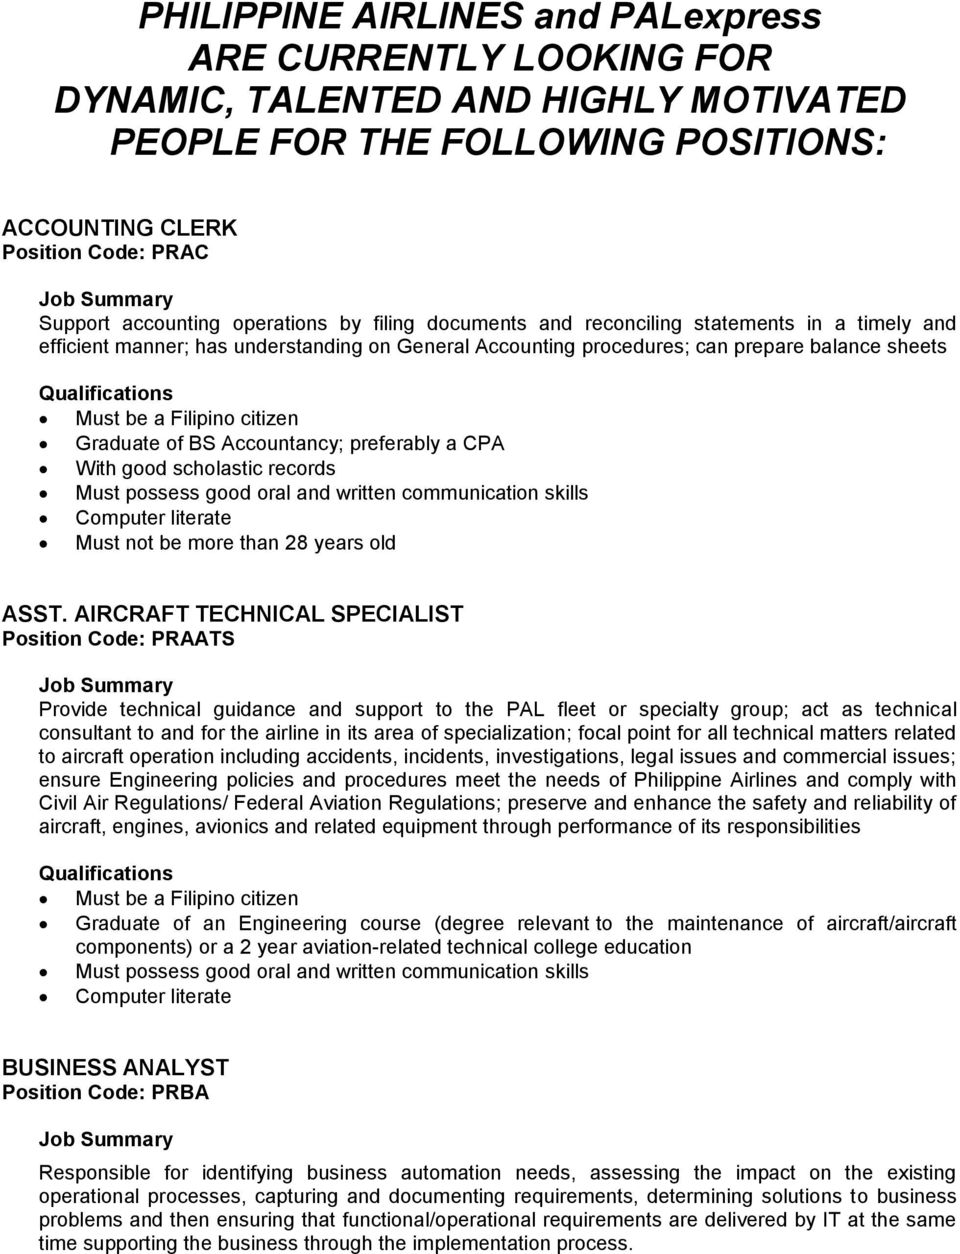 philippine airlines and palexpress are currently looking for graduate of bs accountancy preferably a cpa good scholastic records must possess good oral